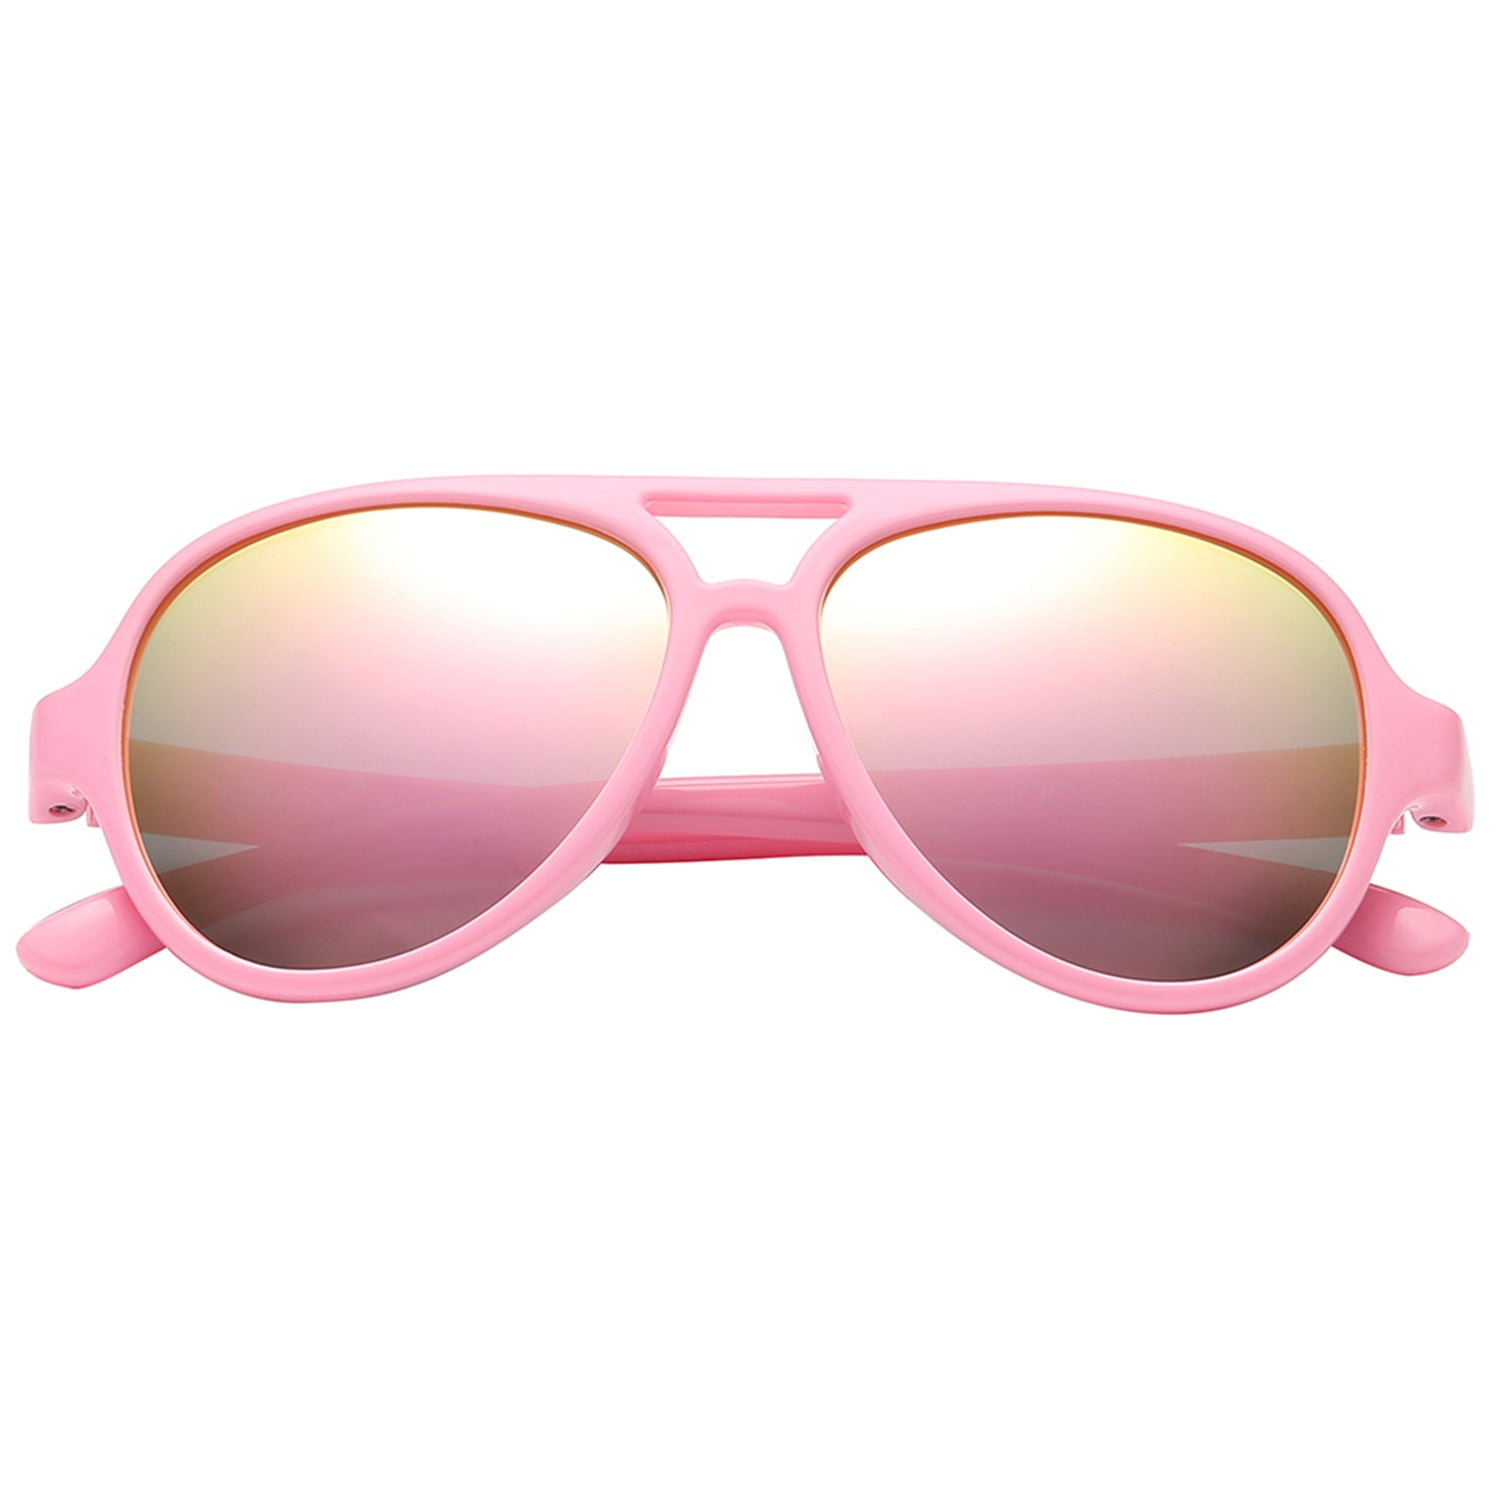 Polarspex Polarized Bendable Aviator Pilot Sunglasses with Princess Pink Frames and Polarized Pink Quartz Lenses for Boys and Girls (Ages 2 - 8)